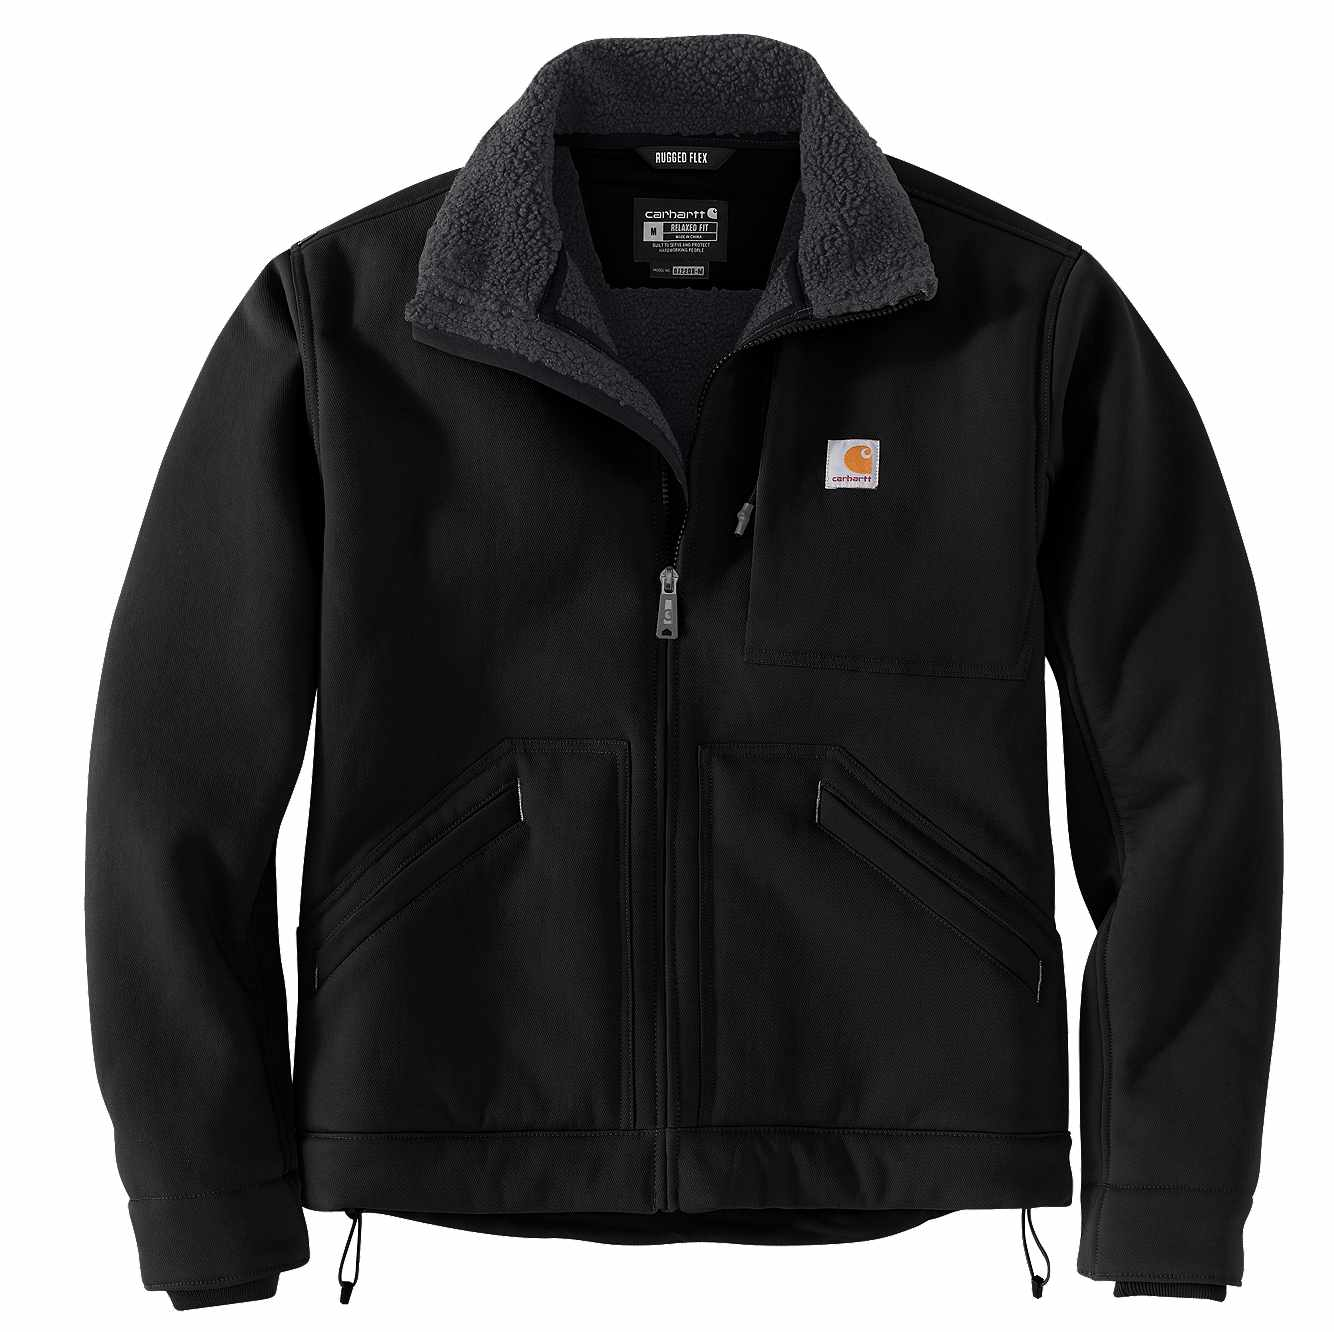 Picture of SUPER DUX™ RELAXED FIT SHERPA-LINED DETROIT JACKET